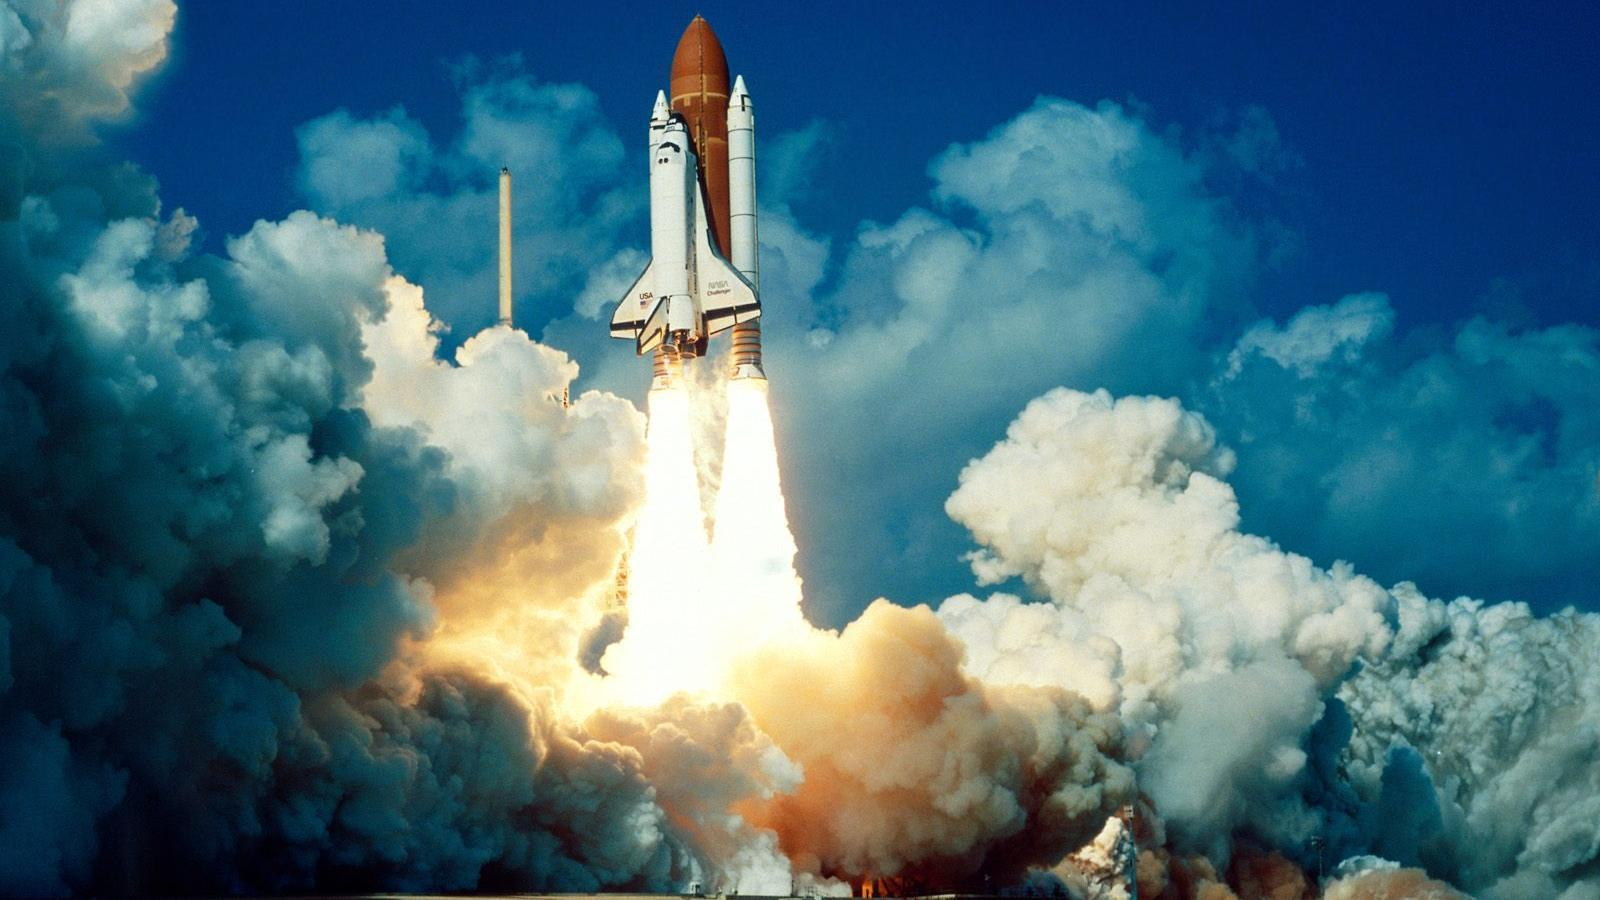 Space Shuttle Desktop Wallpapers 1600x900